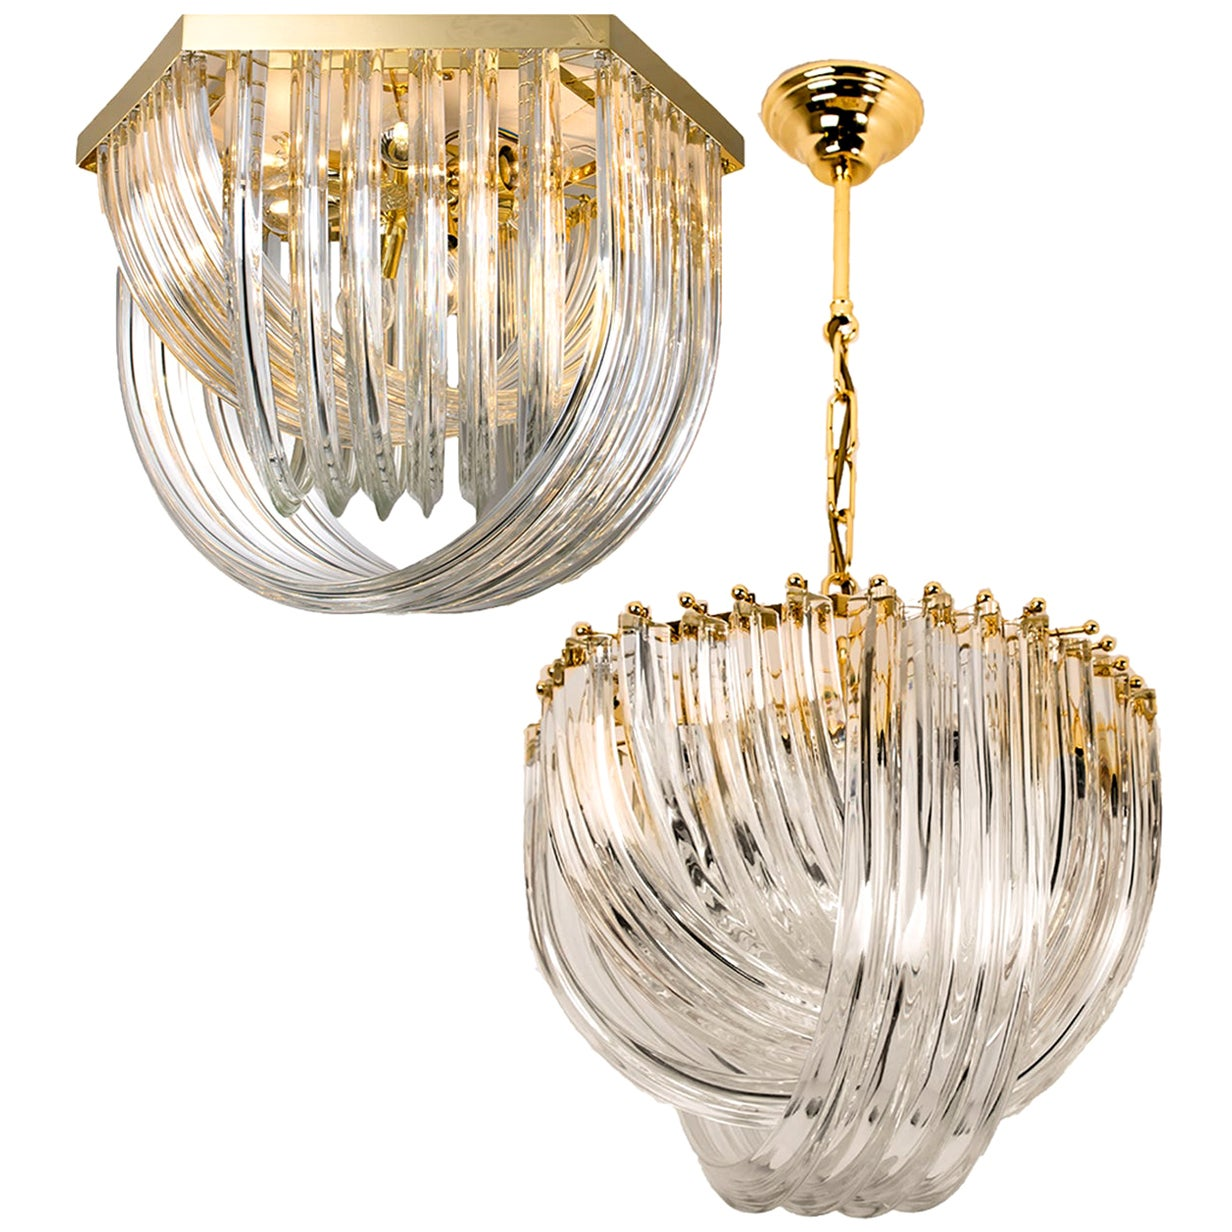 Venini Light Fixture, Curved Crystal Glass and Gilt Brass, Italy